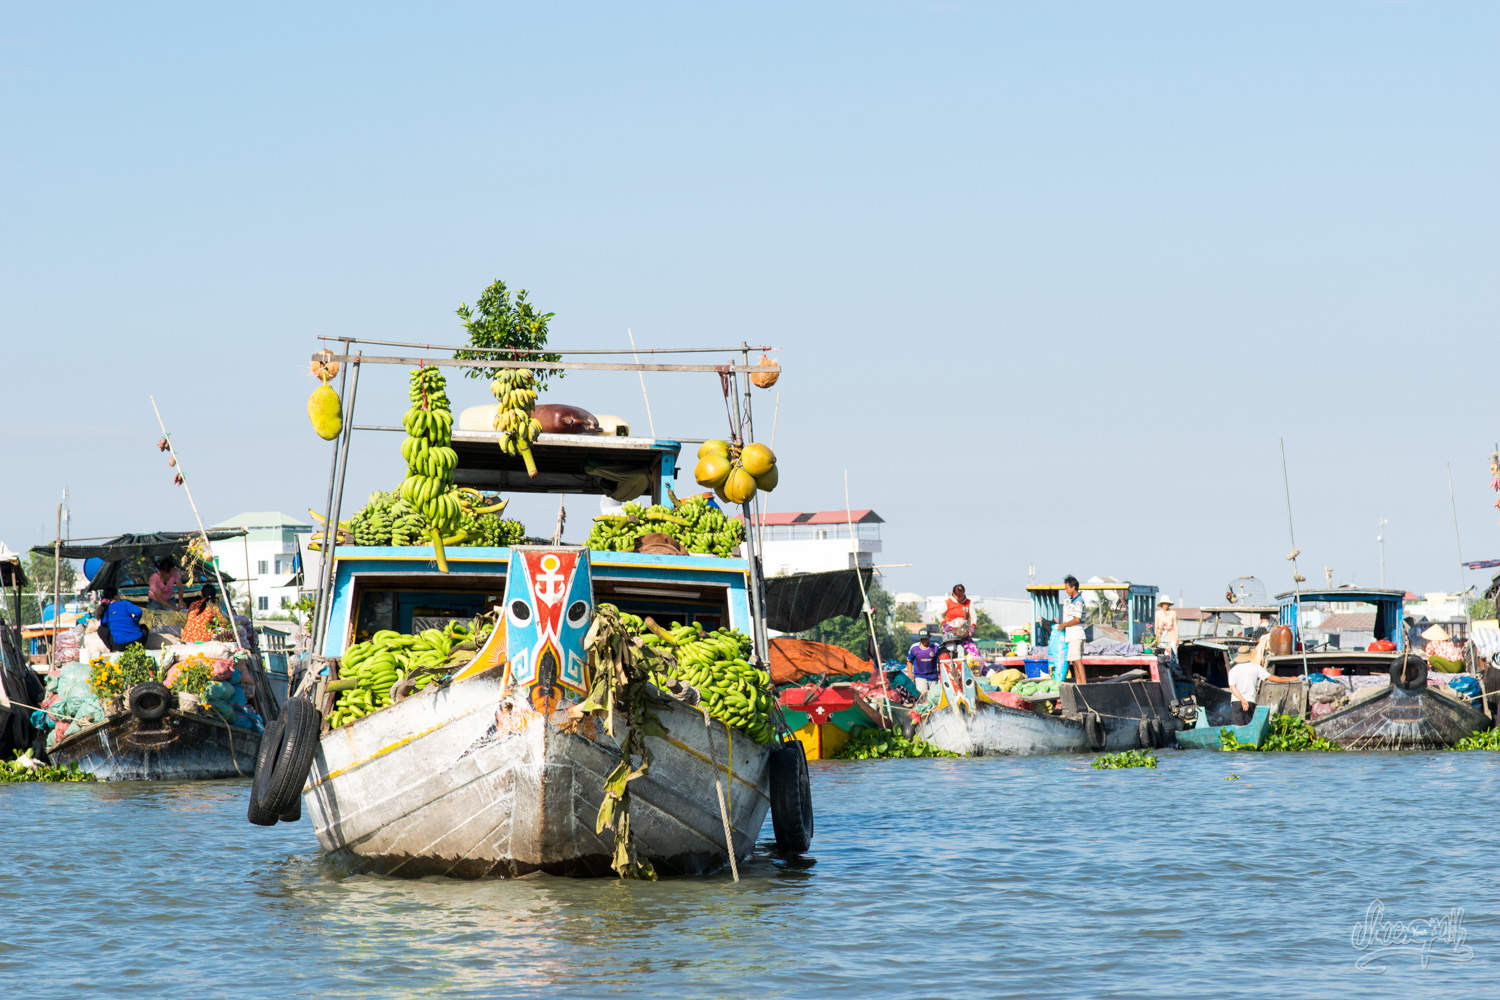 Sunny morning at Chau Doc floating market.